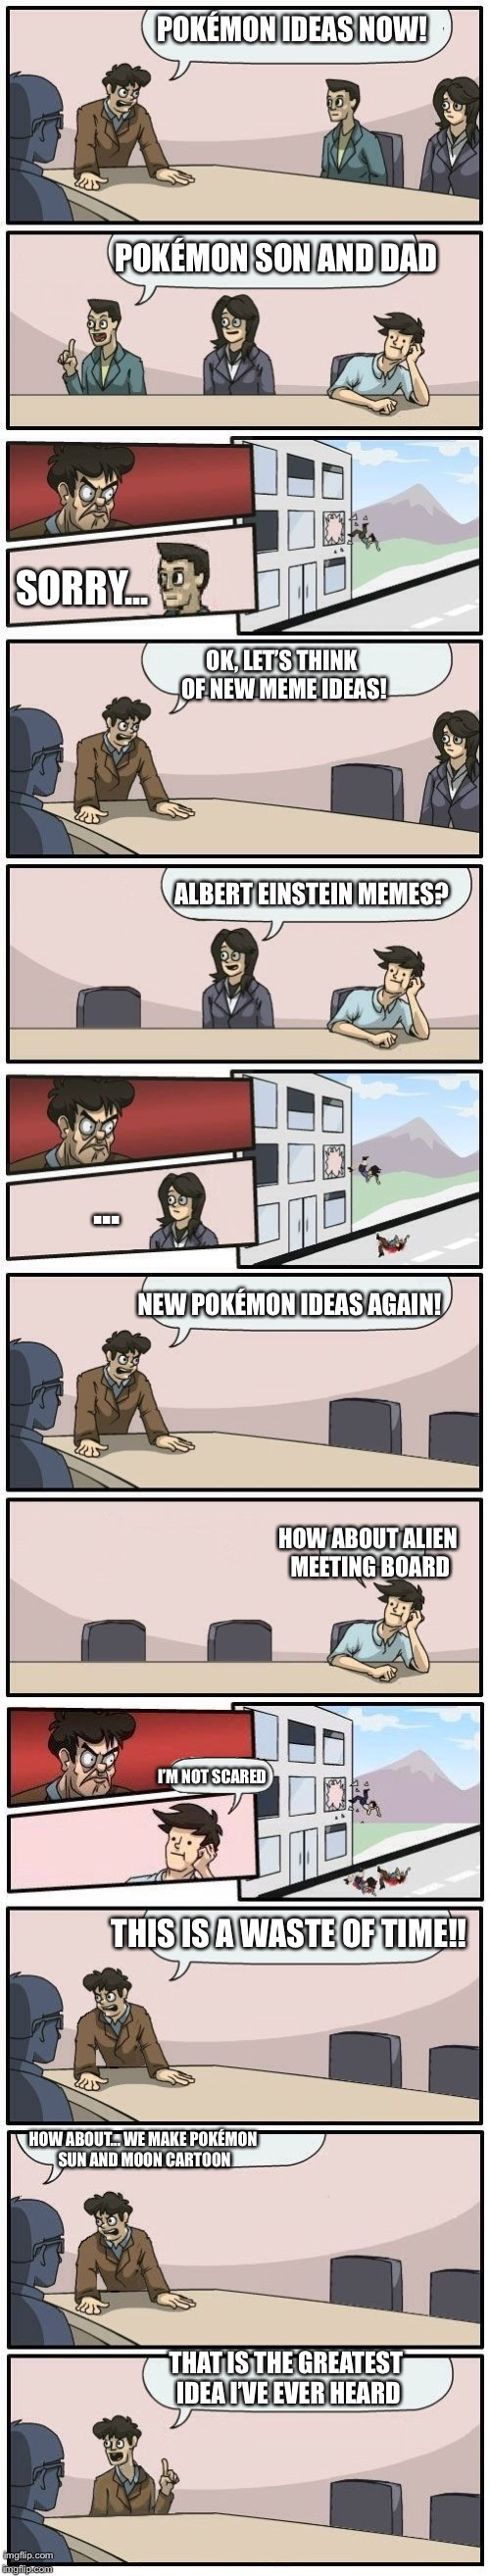 Boardroom Meeting Suggestions Extended | POKÉMON IDEAS NOW! POKÉMON SON AND DAD SORRY... OK, LET'S THINK OF NEW MEME IDEAS! ALBERT EINSTEIN MEMES? ... NEW POKÉMON IDEAS AGAIN! HOW A | image tagged in boardroom meeting suggestions extended | made w/ Imgflip meme maker